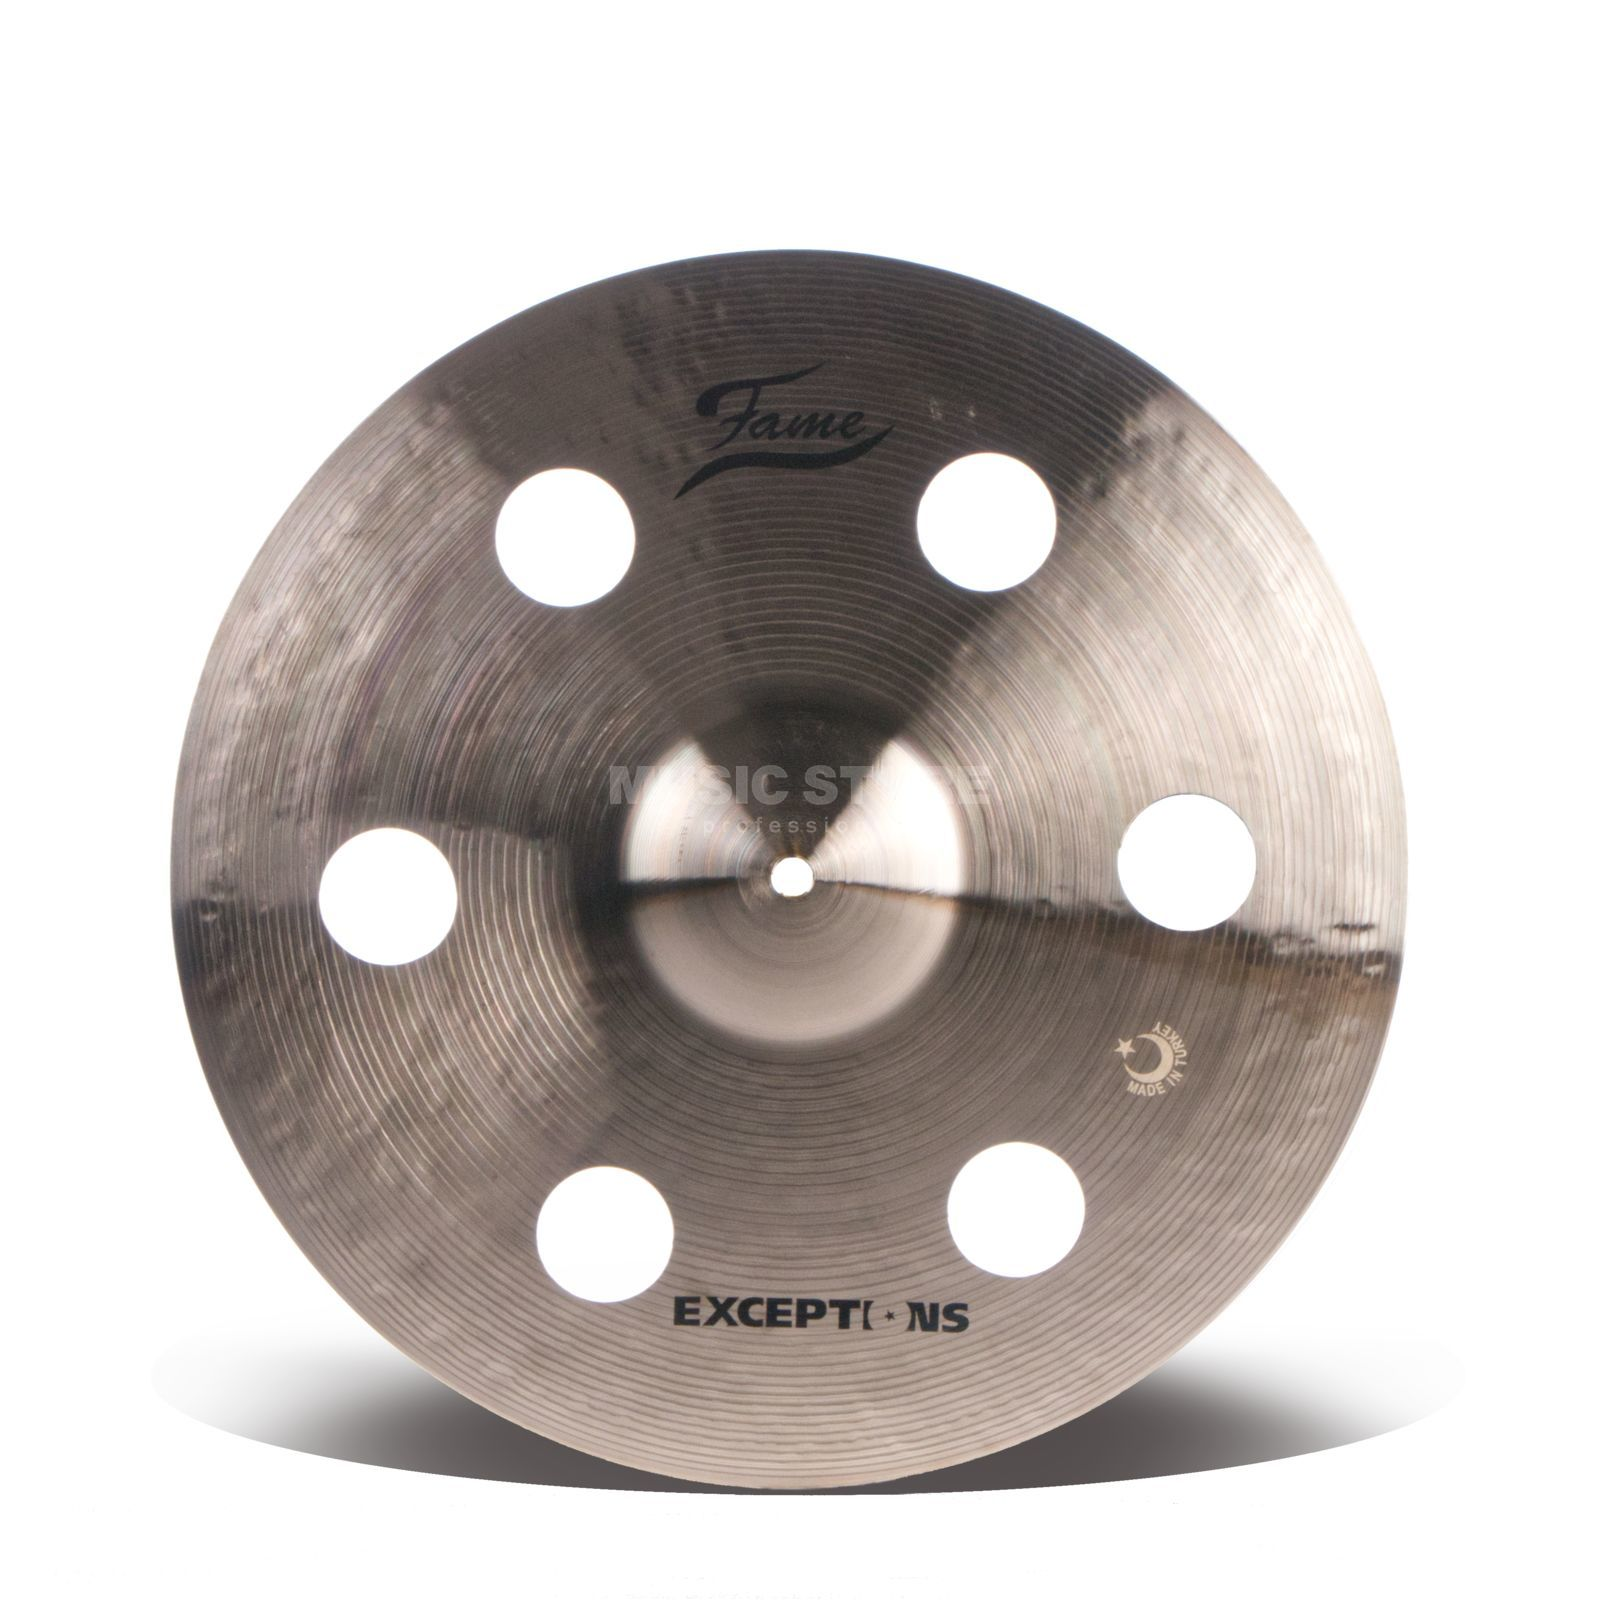 "Fame Masters B20 Holey Crash 16"" Natural Finish Produktbillede"